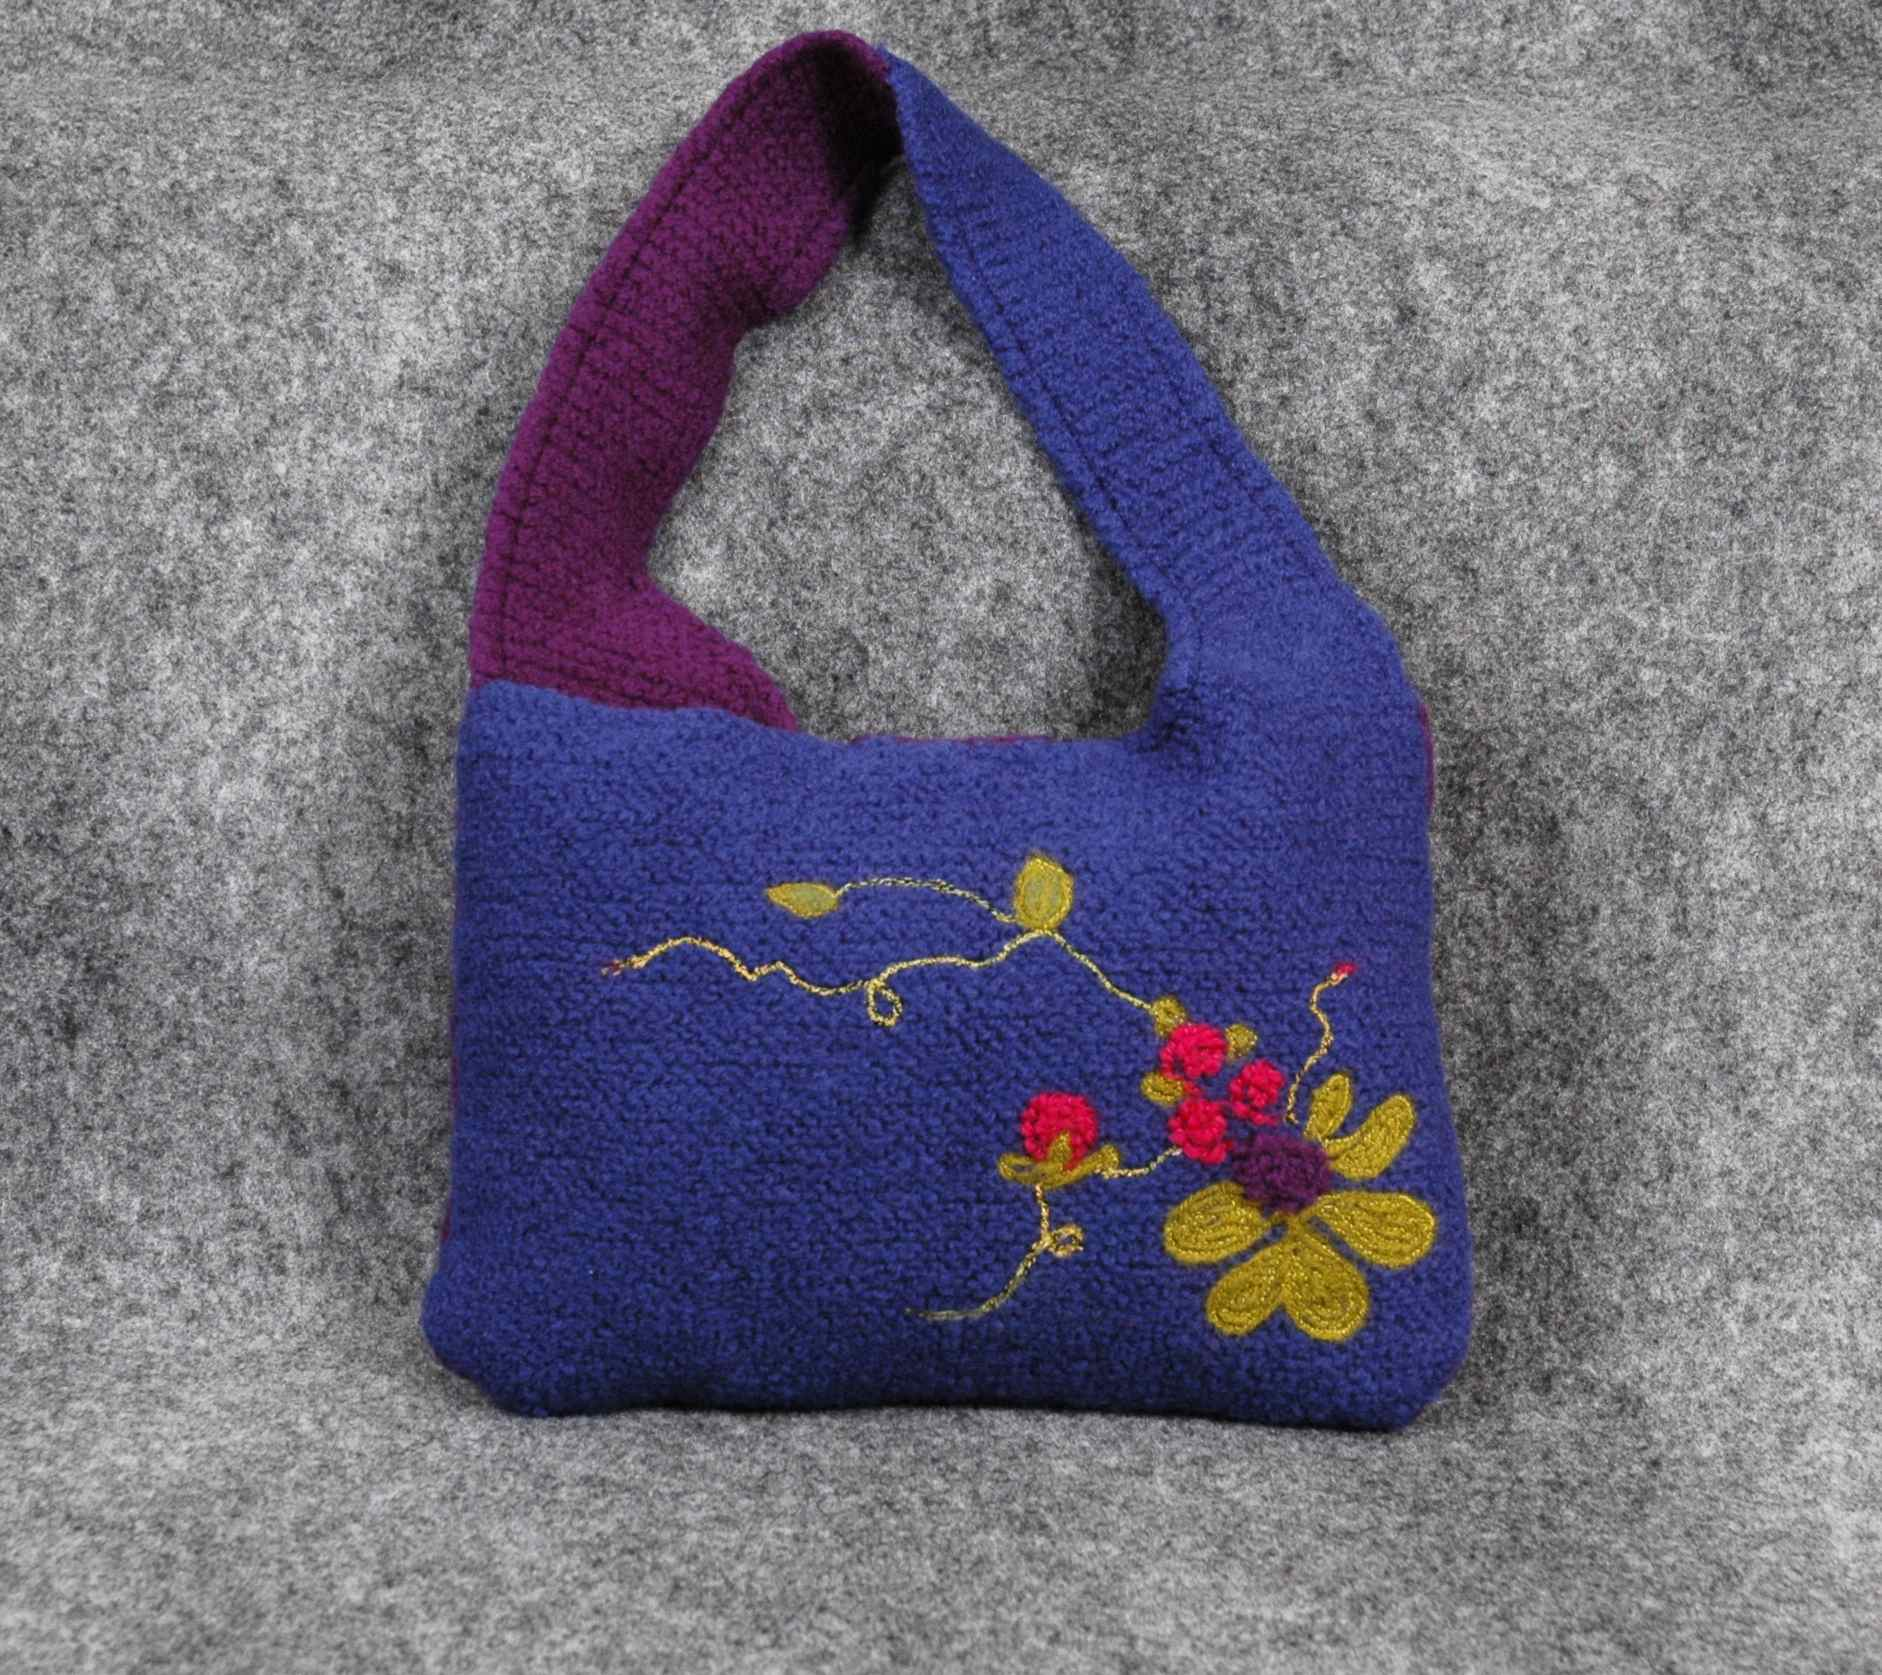 Woolen Crochet Purse : Home ? Purses ? Two-toned Knitted Wool Felted Purse